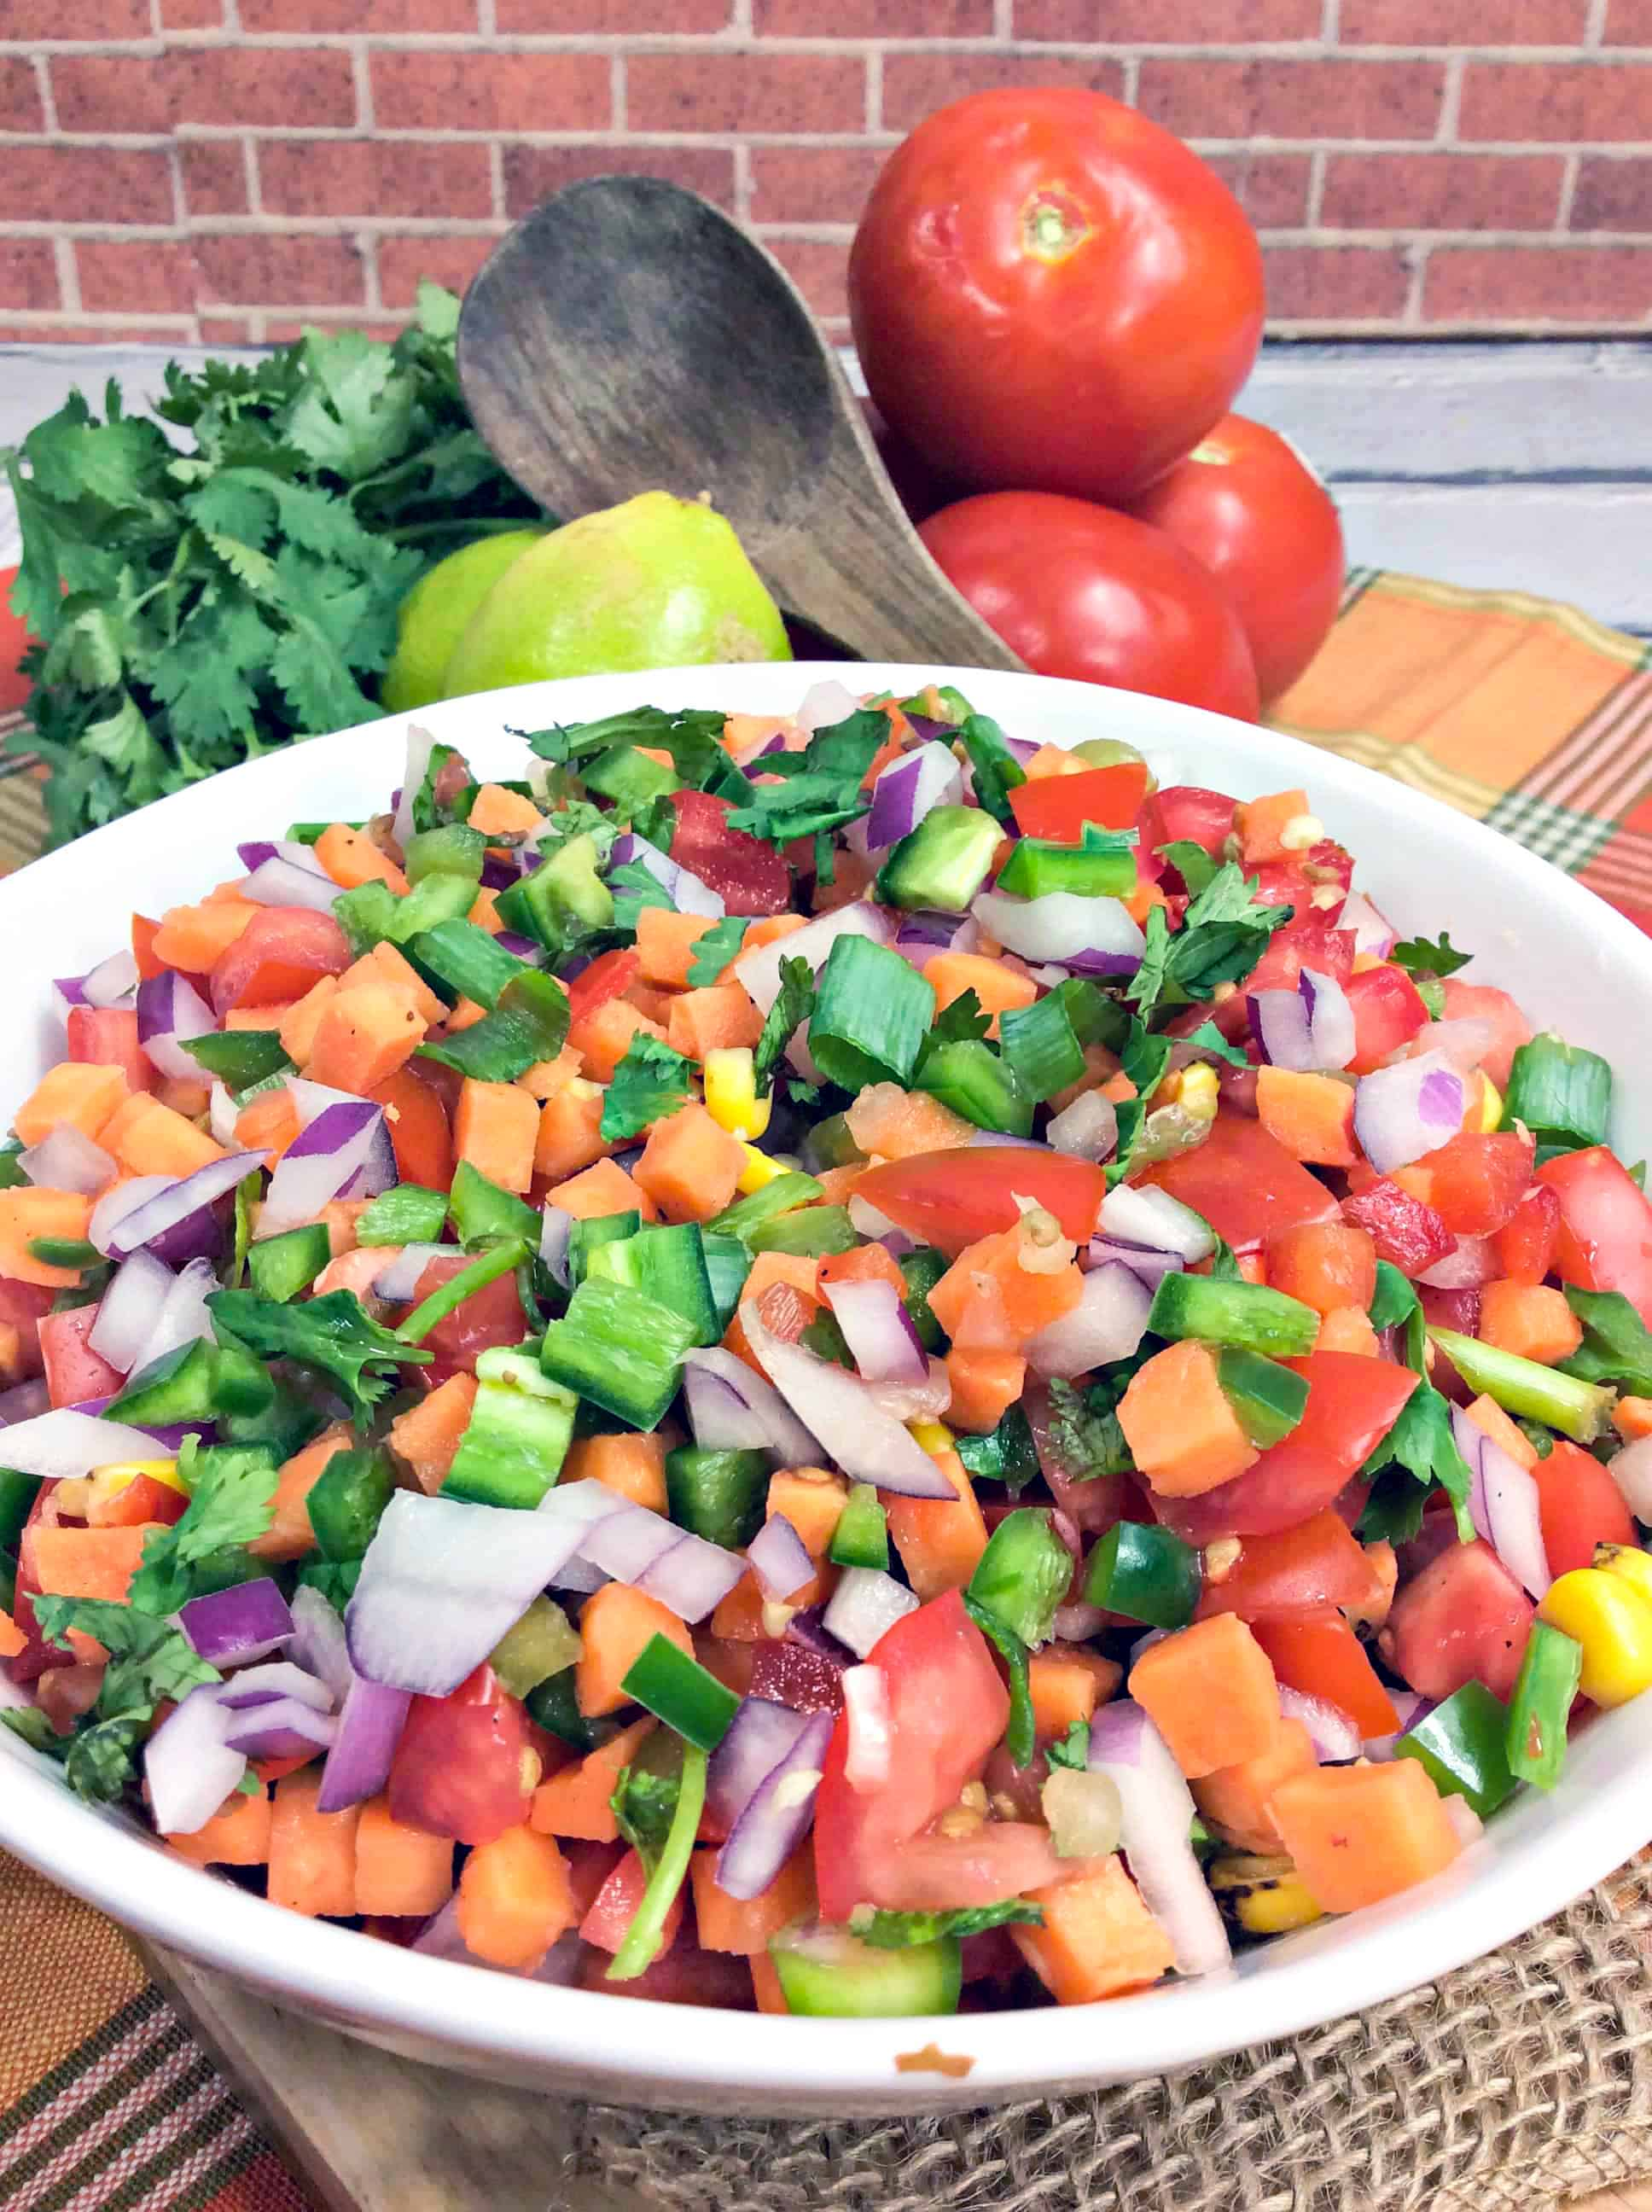 pico de gallo salsa in a bowl